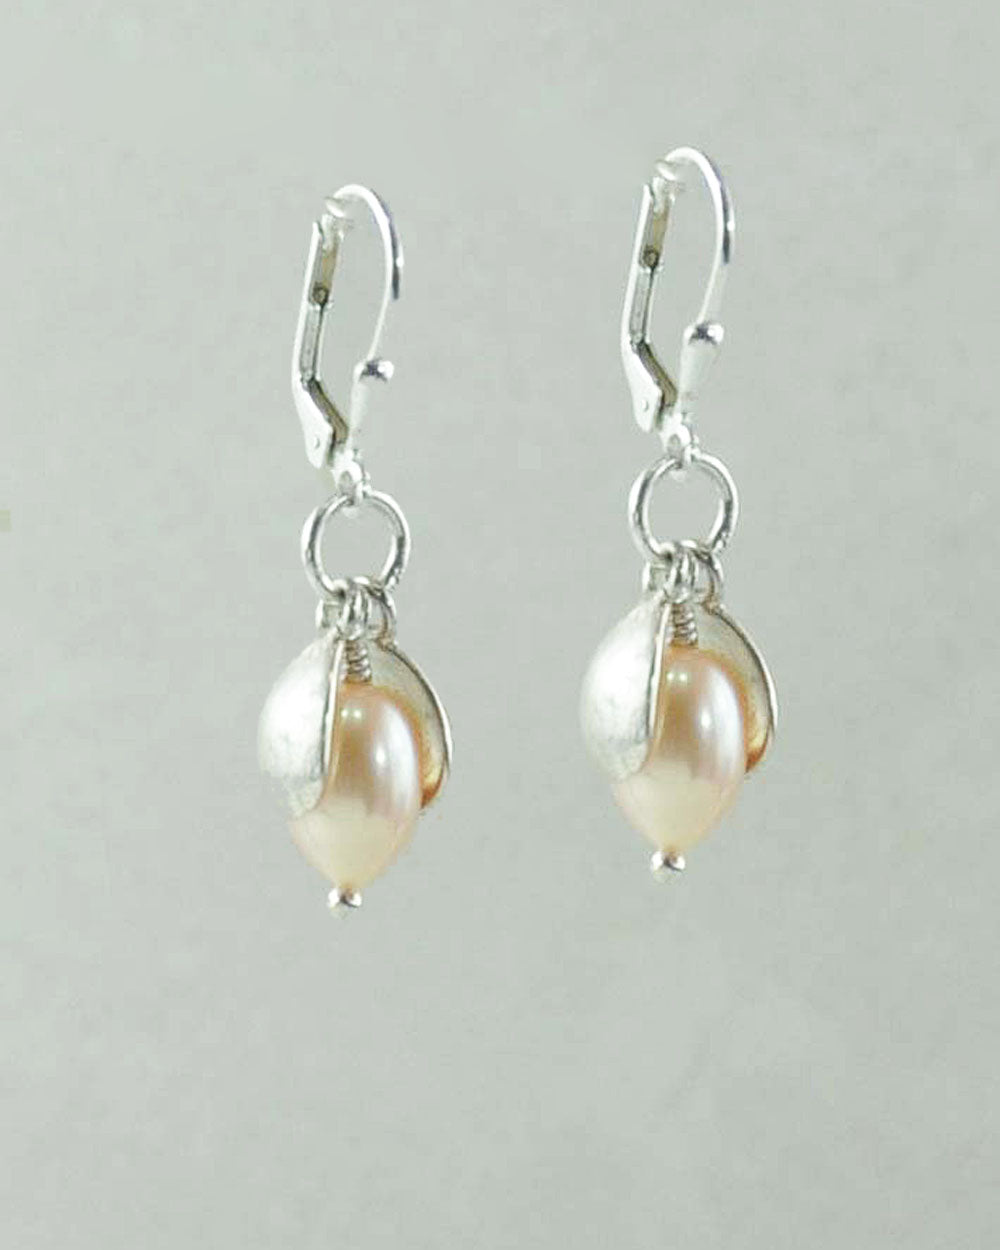 Peach Pearl Dangling Earrings in Sterling Silver